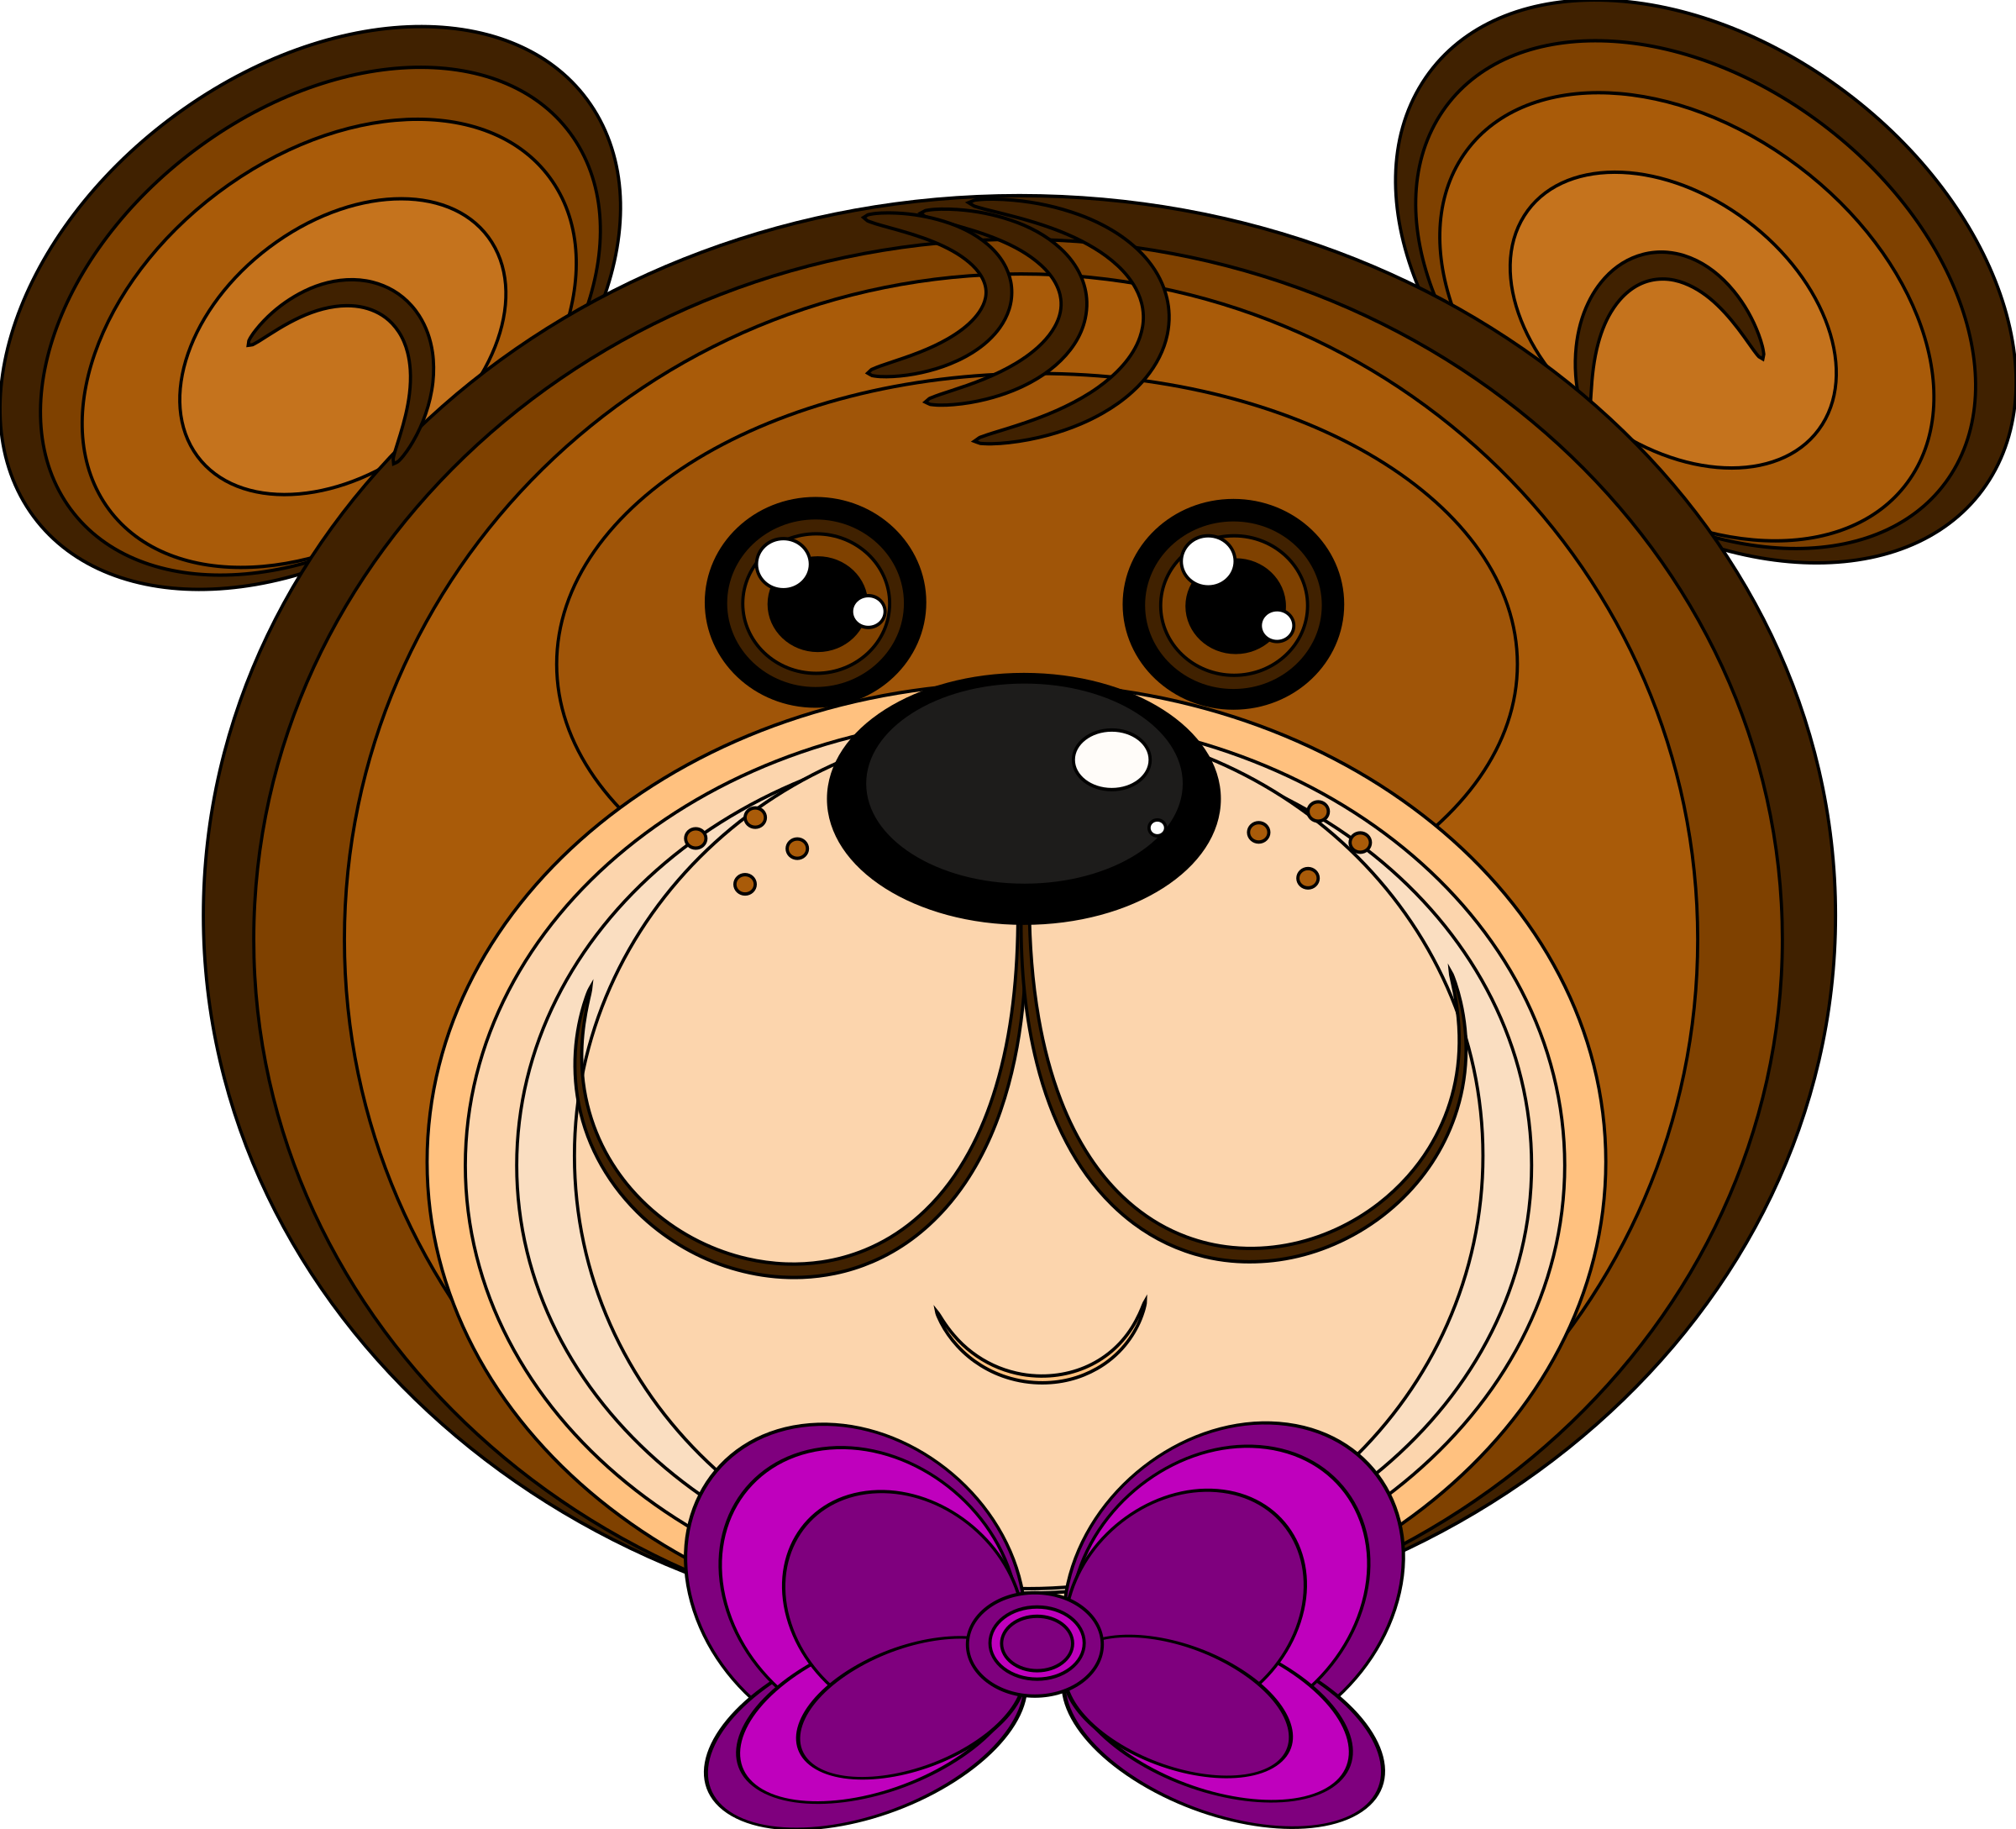 Clipart bear brown bear. Teddy big image png